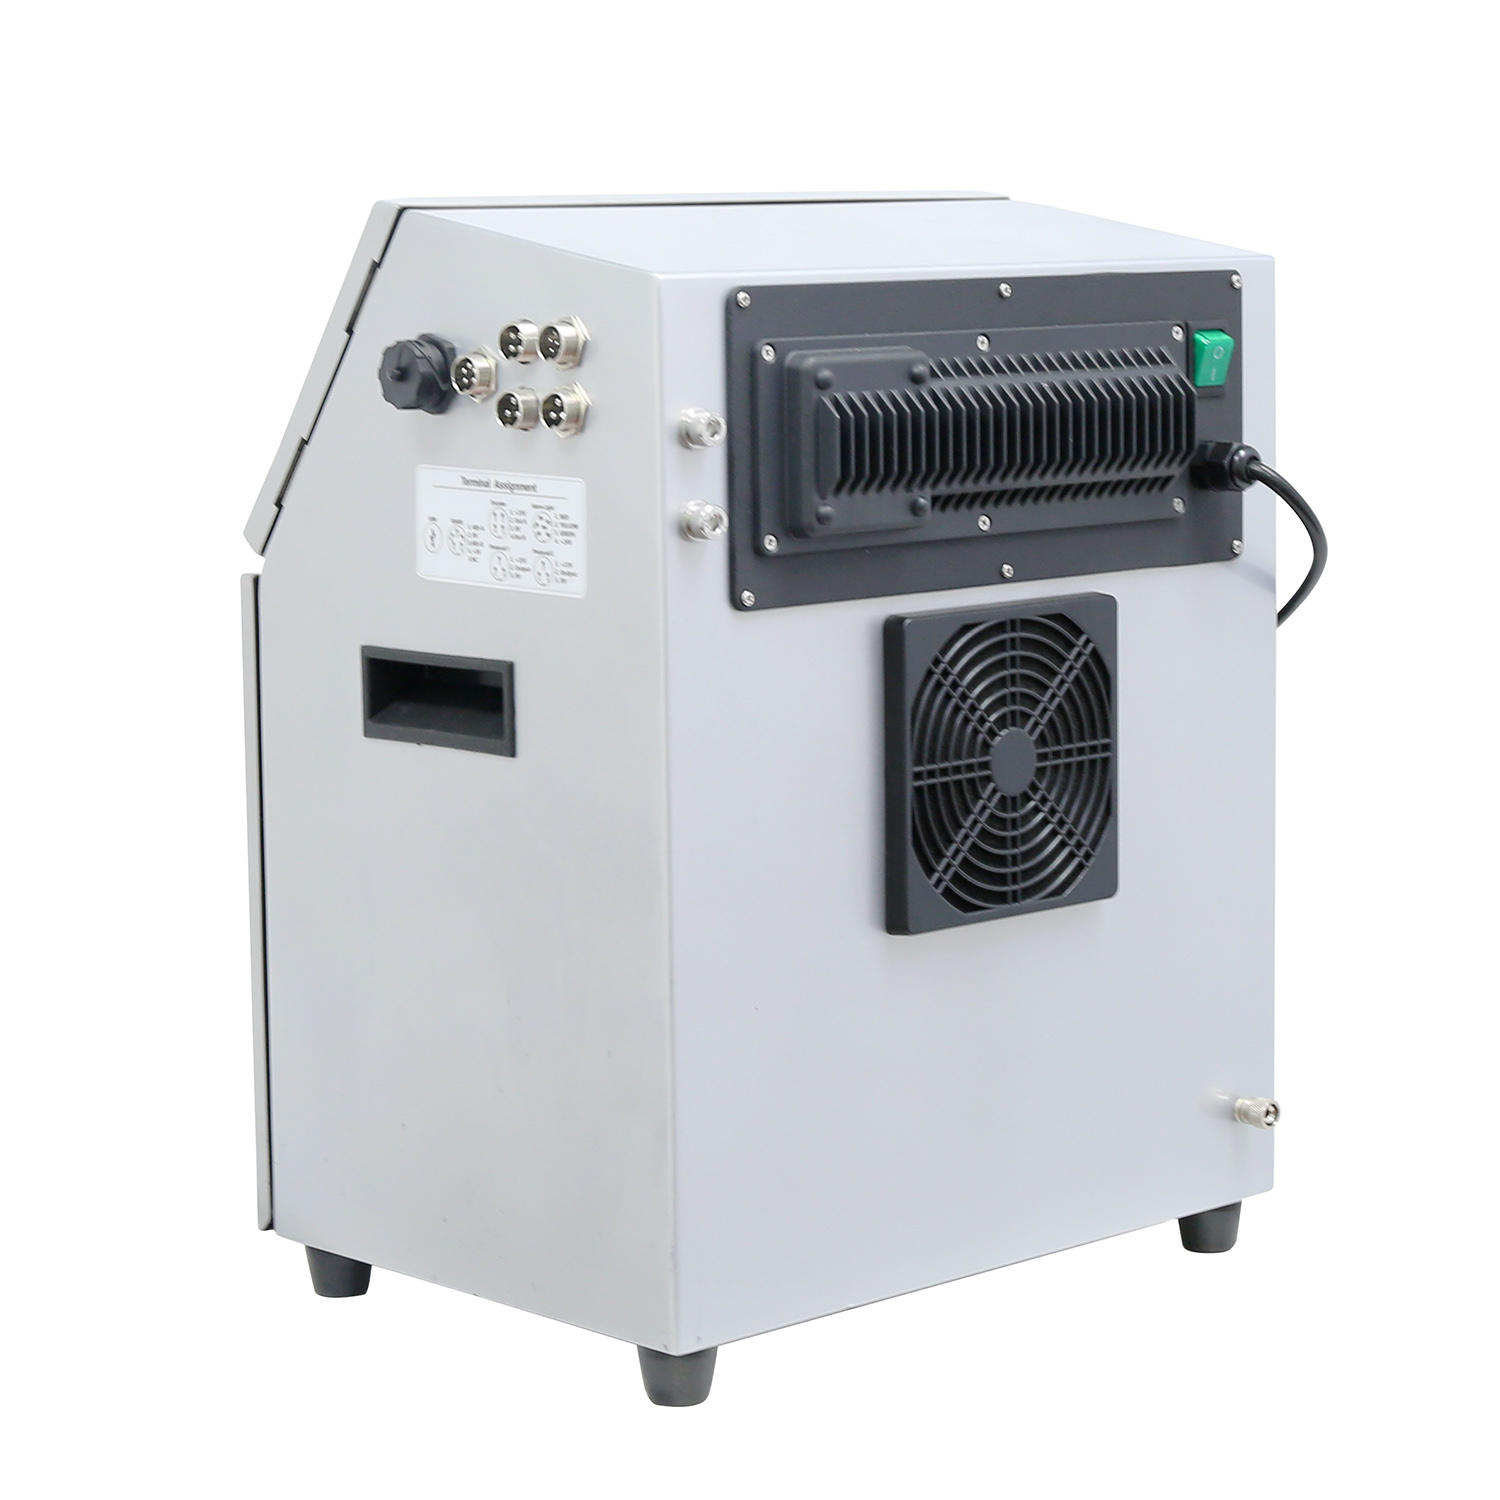 Lead Tech Lt800 Engraving Machine Small Character Printer